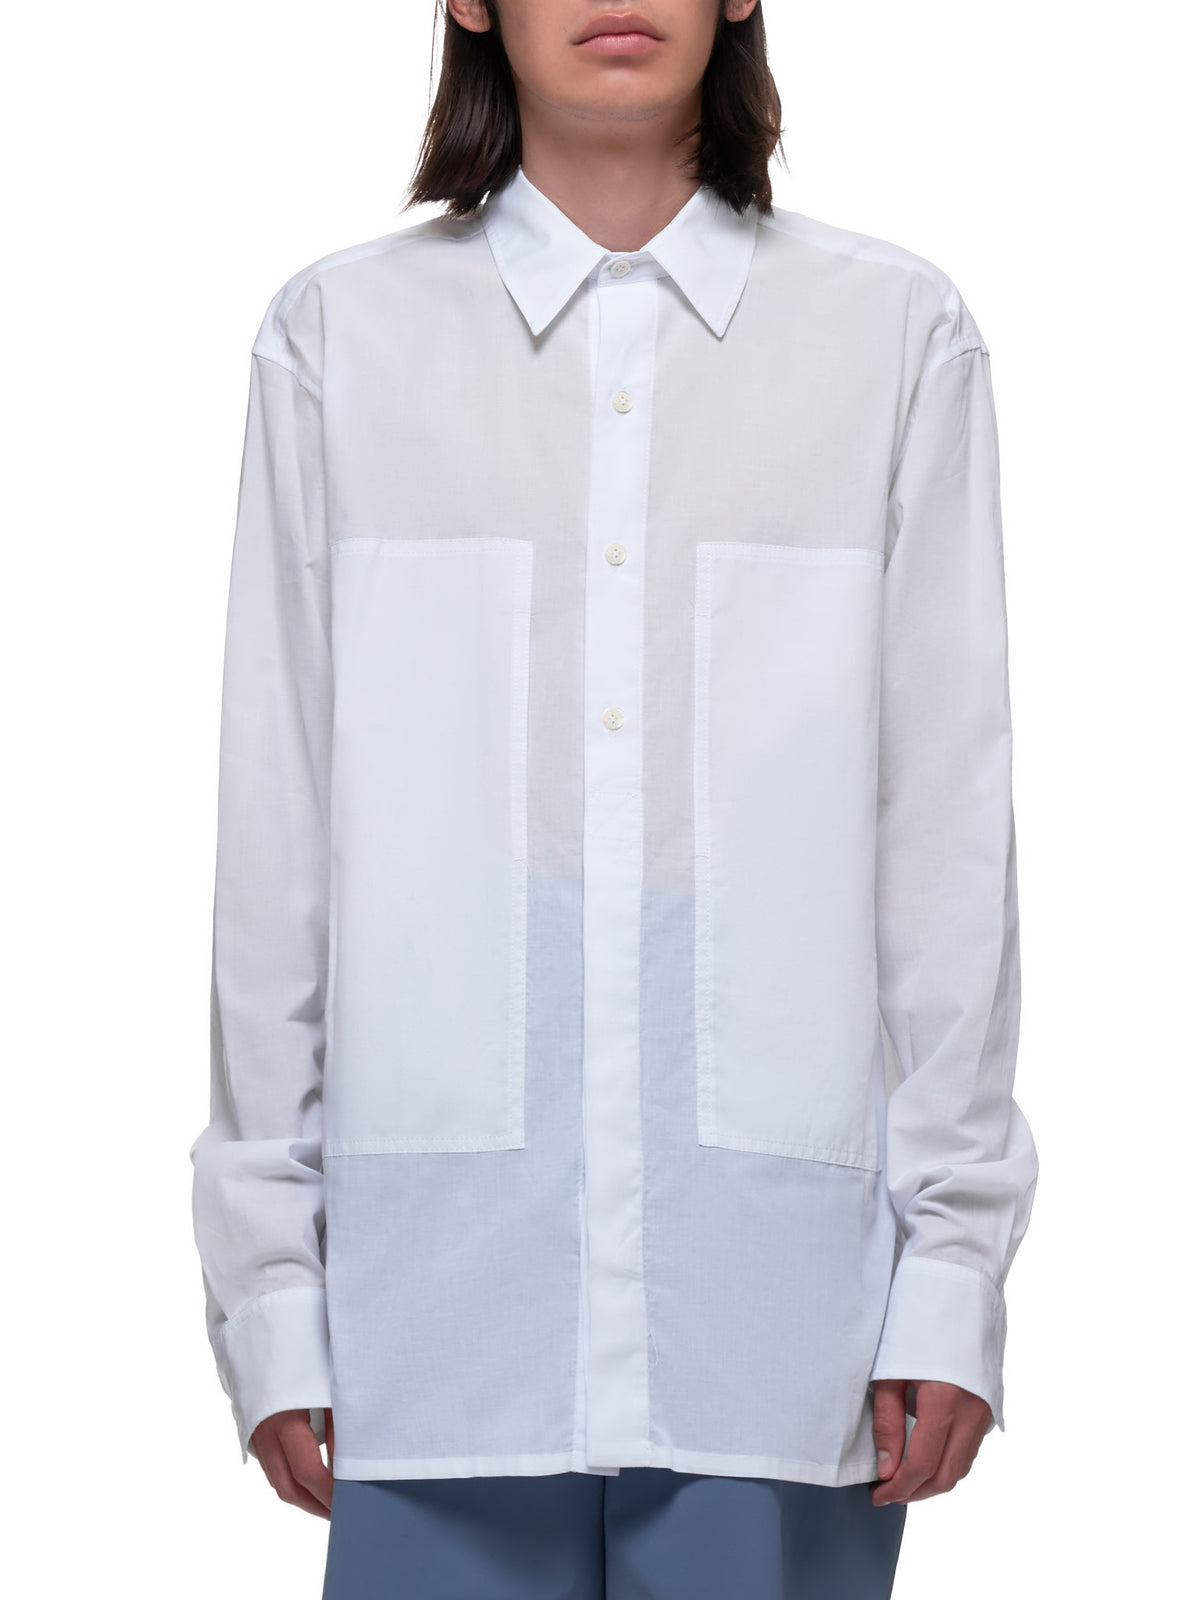 Layered Smock Panel Button Down Shirt (2007-3602-120-001-WHITE)